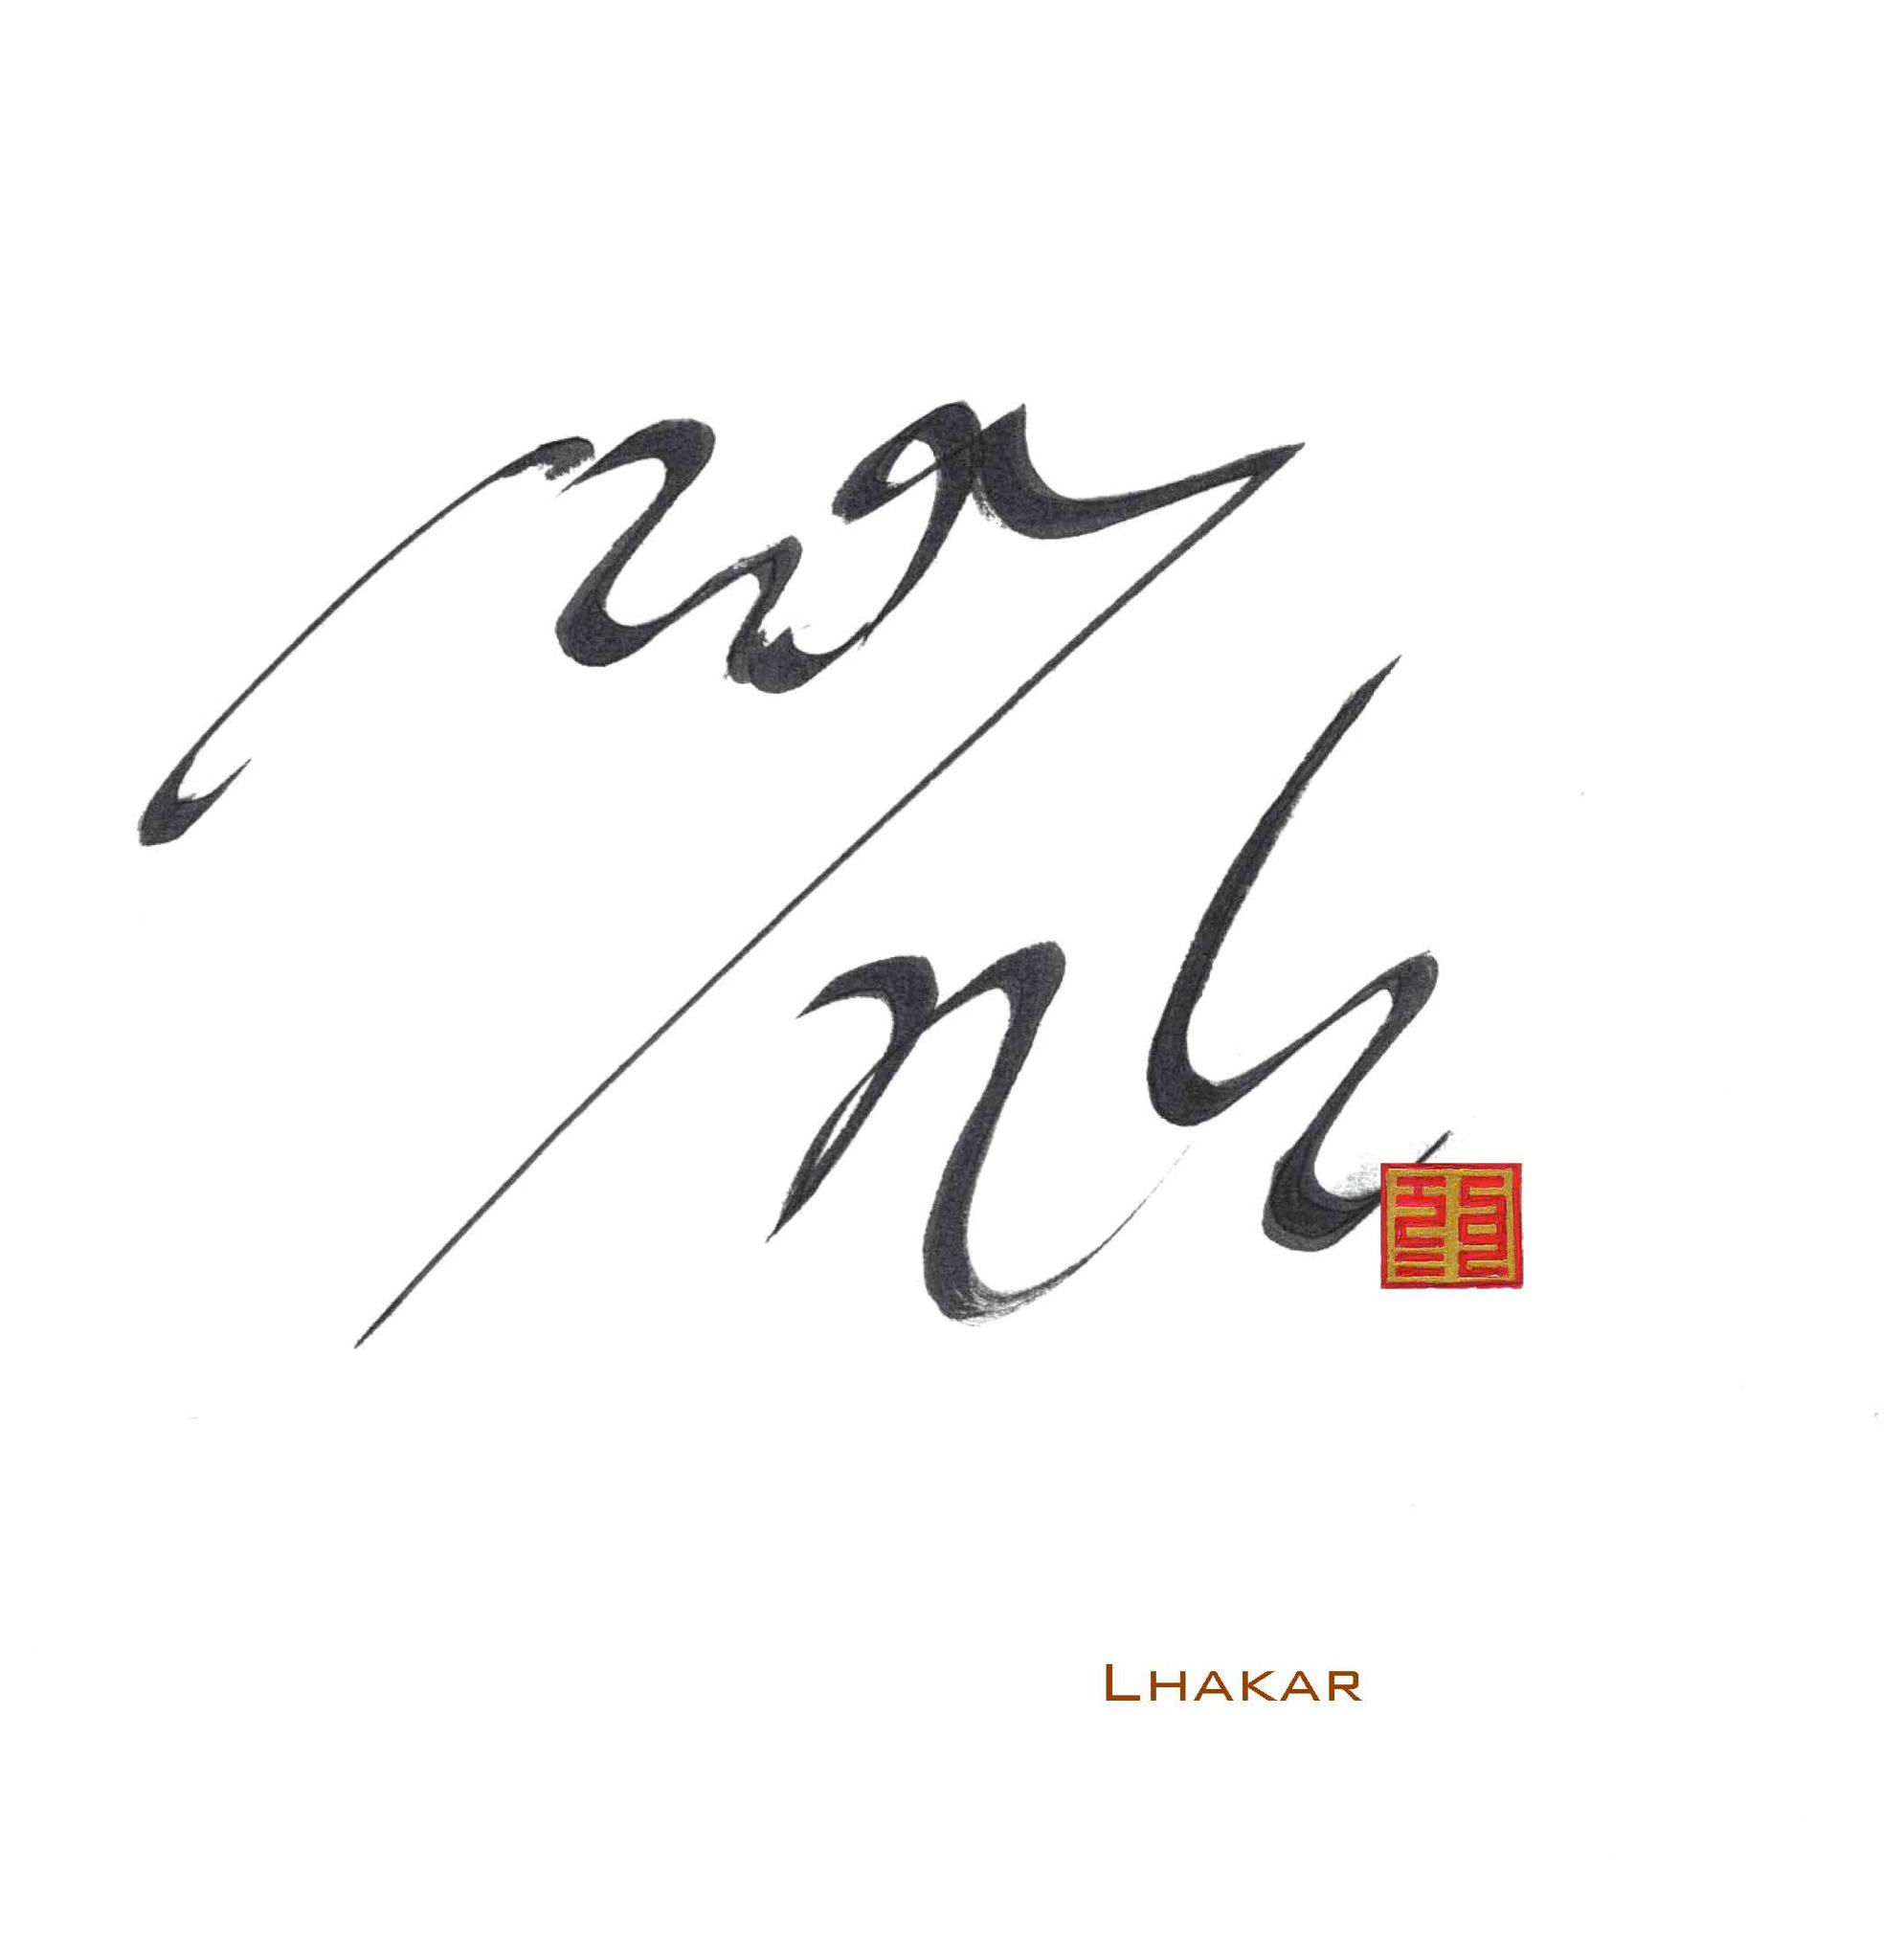 Visualizing Lhakar Part Two, Calligraphy by Puntsok Tsering